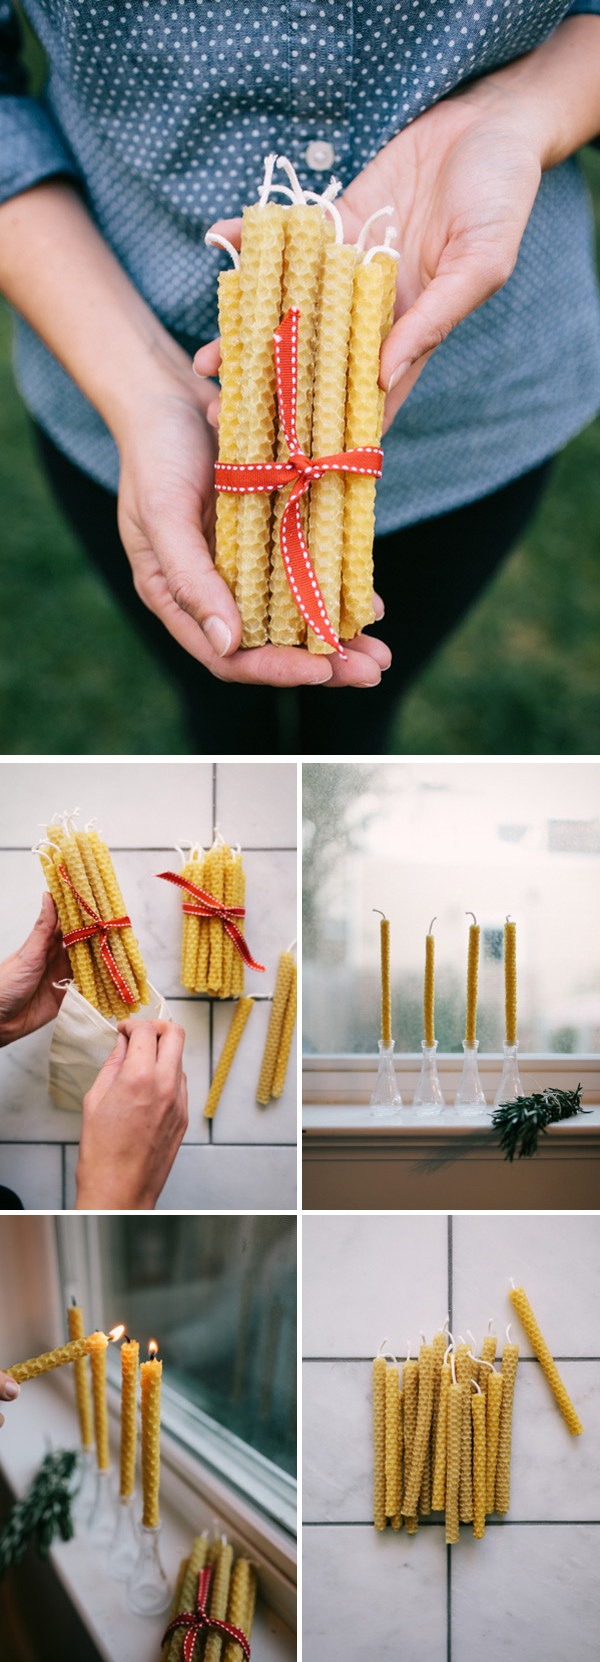 DIY Beeswax Candles.